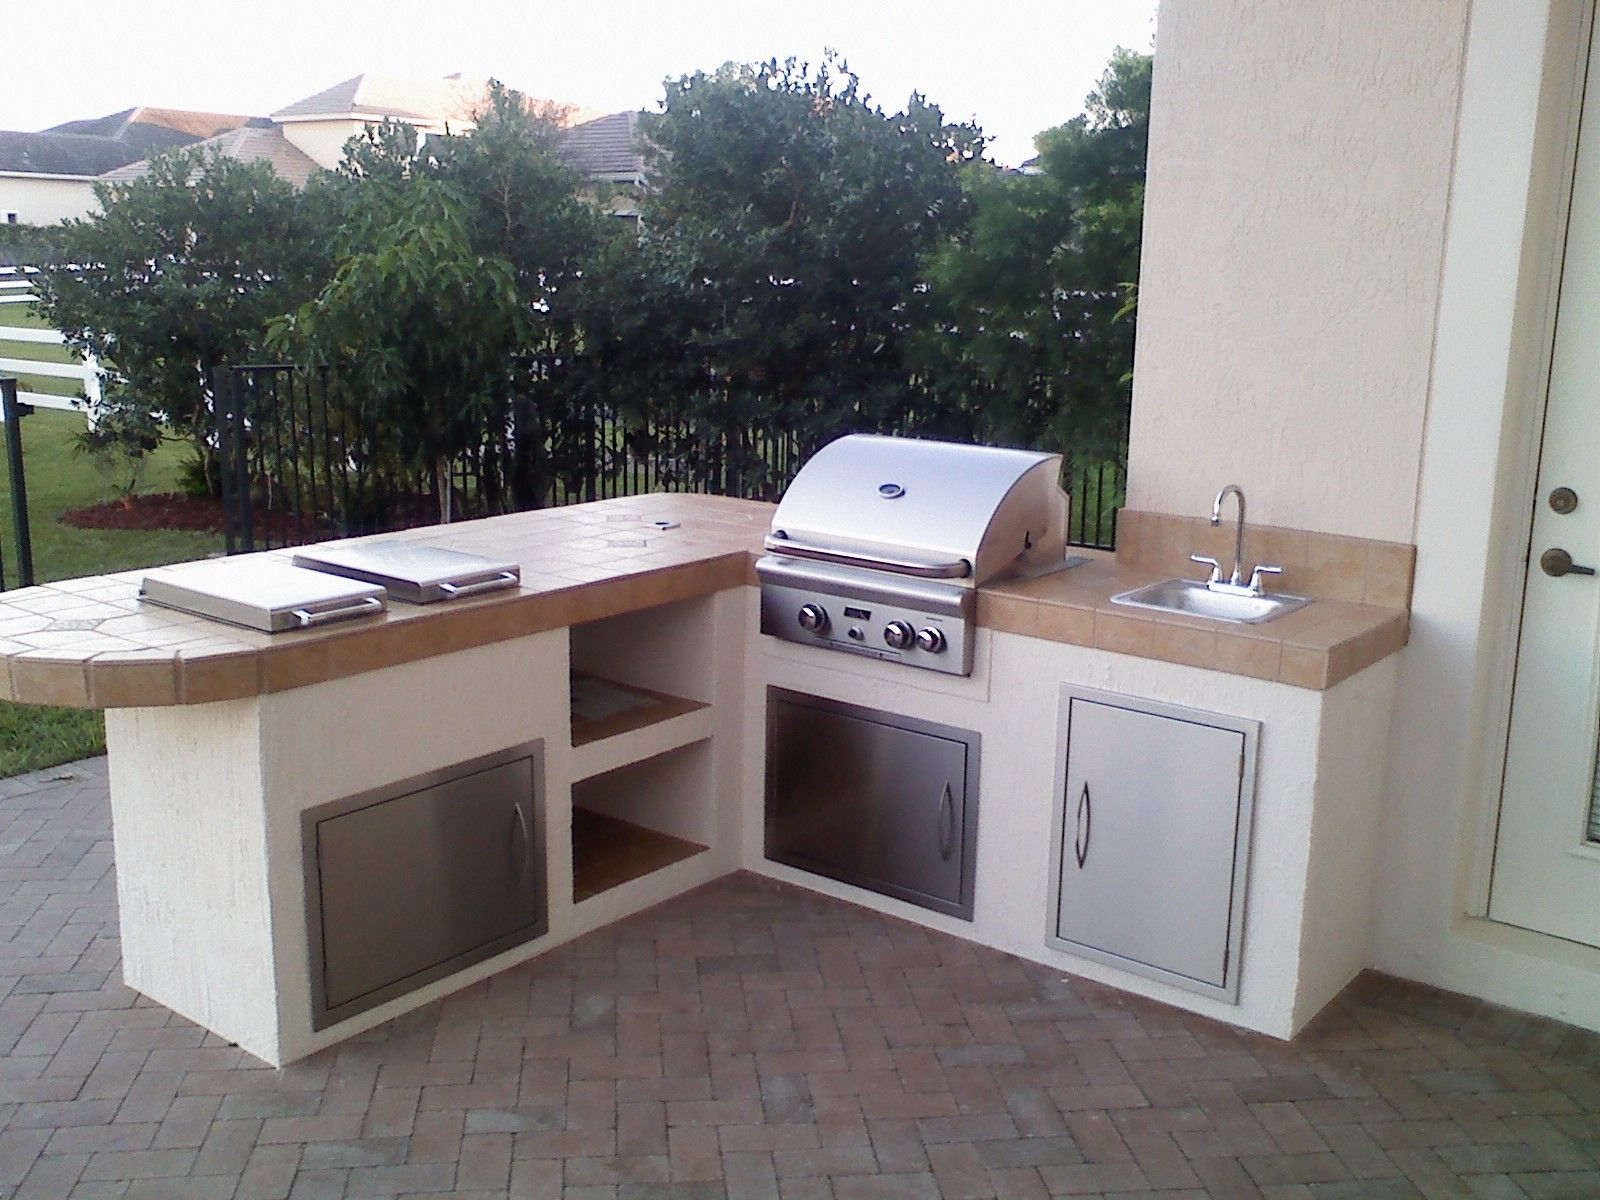 Outdoor BBQ Grill Designs Find Grill & Outdoor Cooking is very